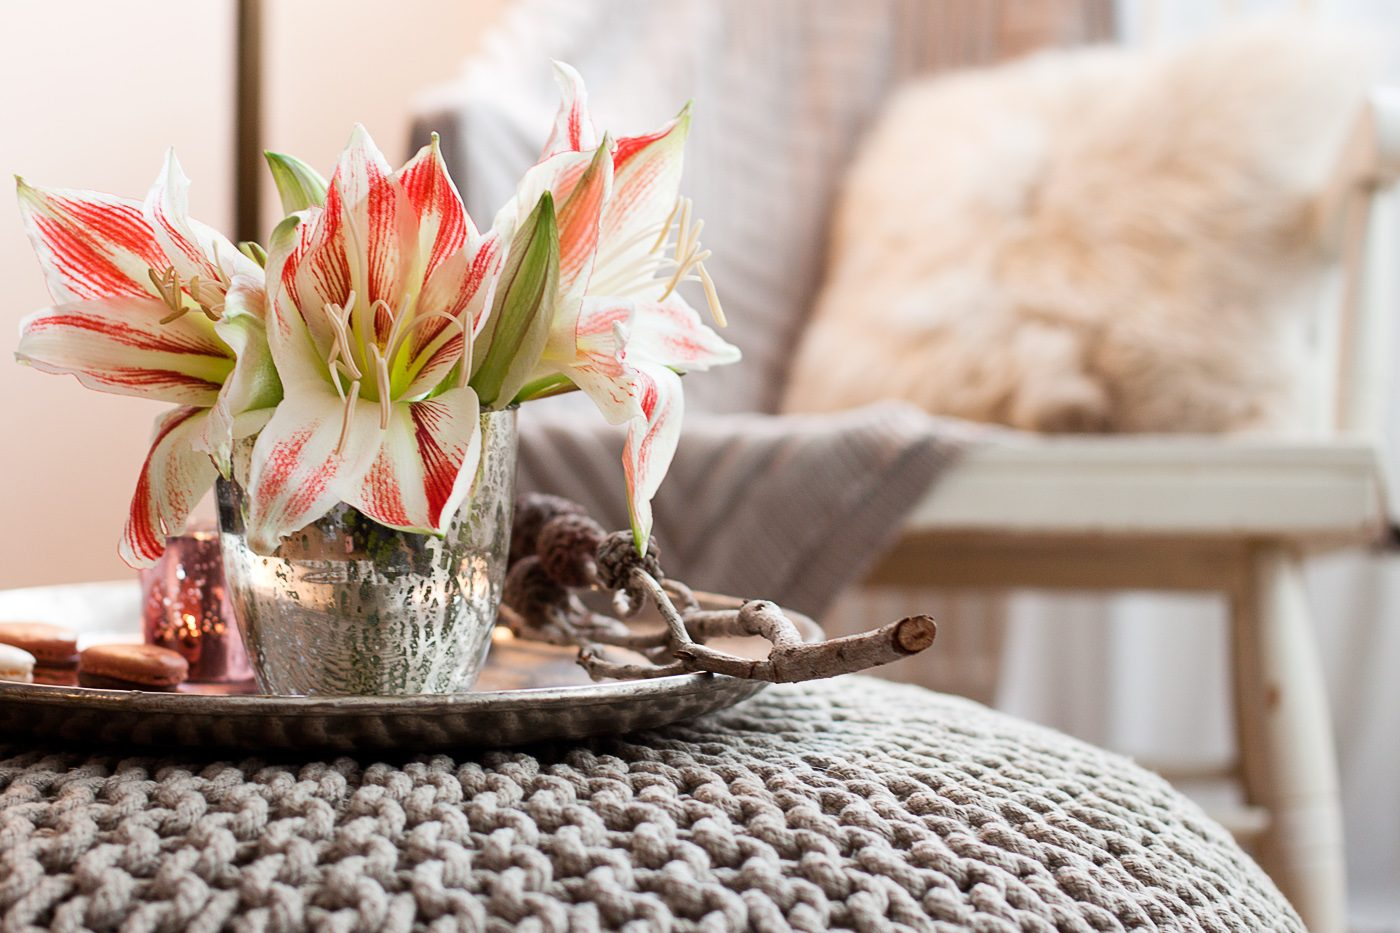 Interior: Cozy Winter Day With Westwing